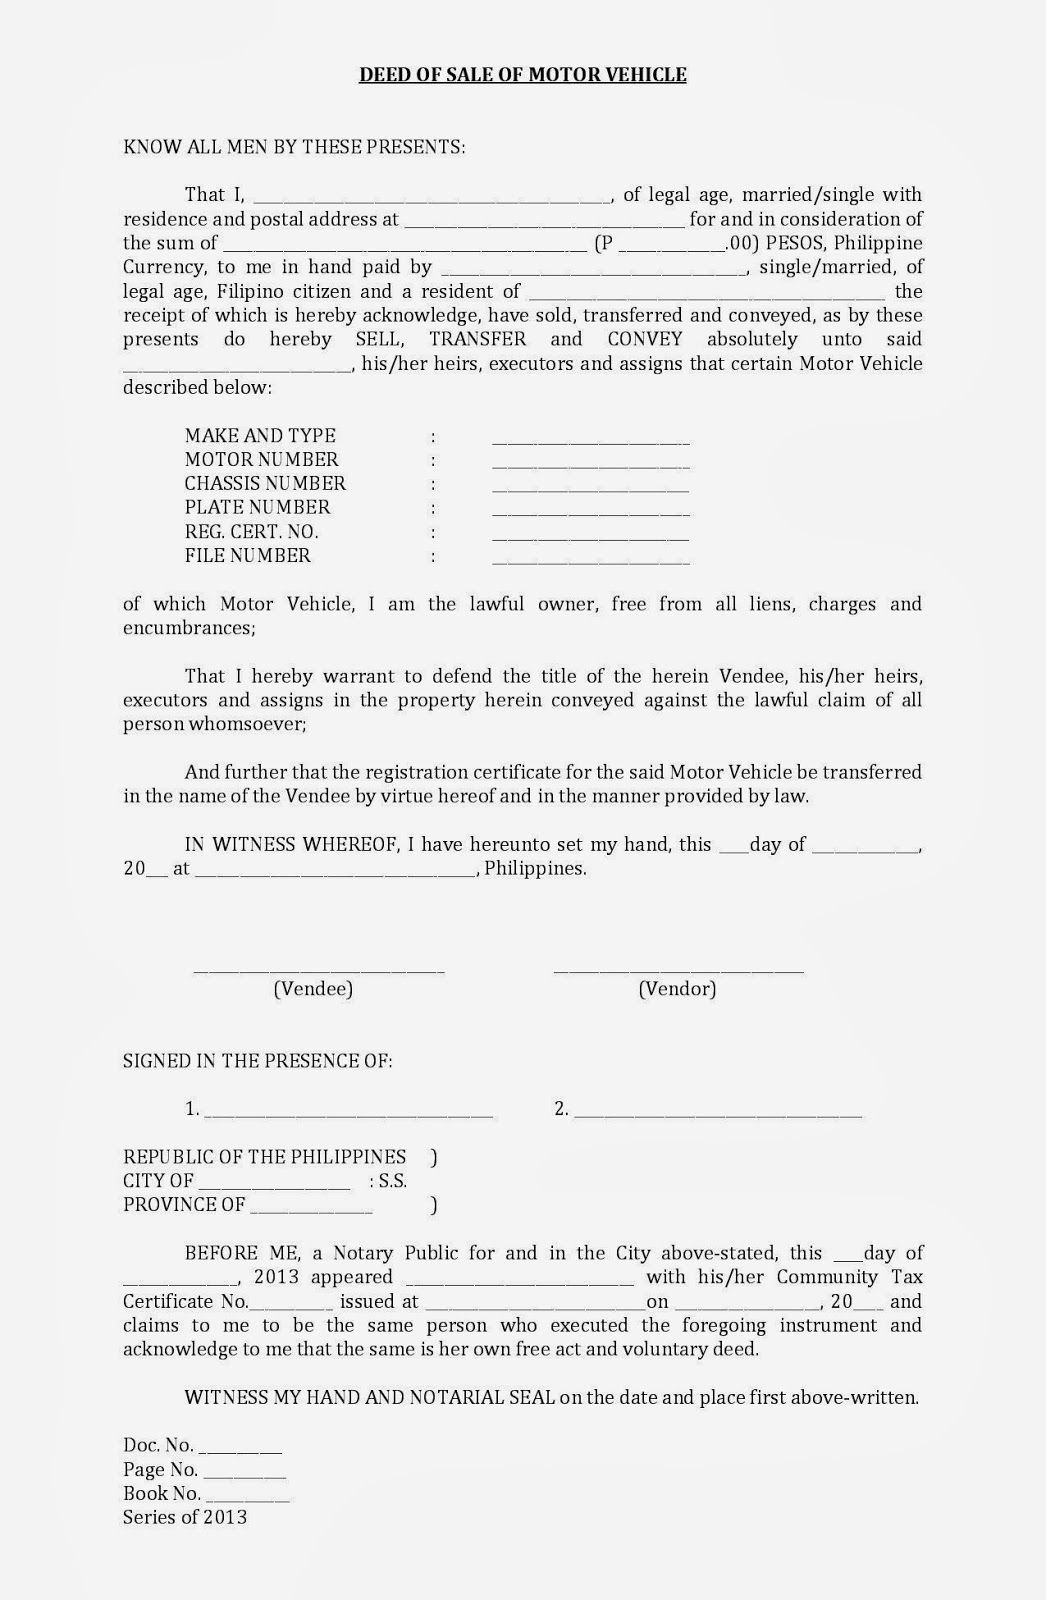 DEED OF SALE MOTOR VEHICLE FORMAT FILESishare sale deed for